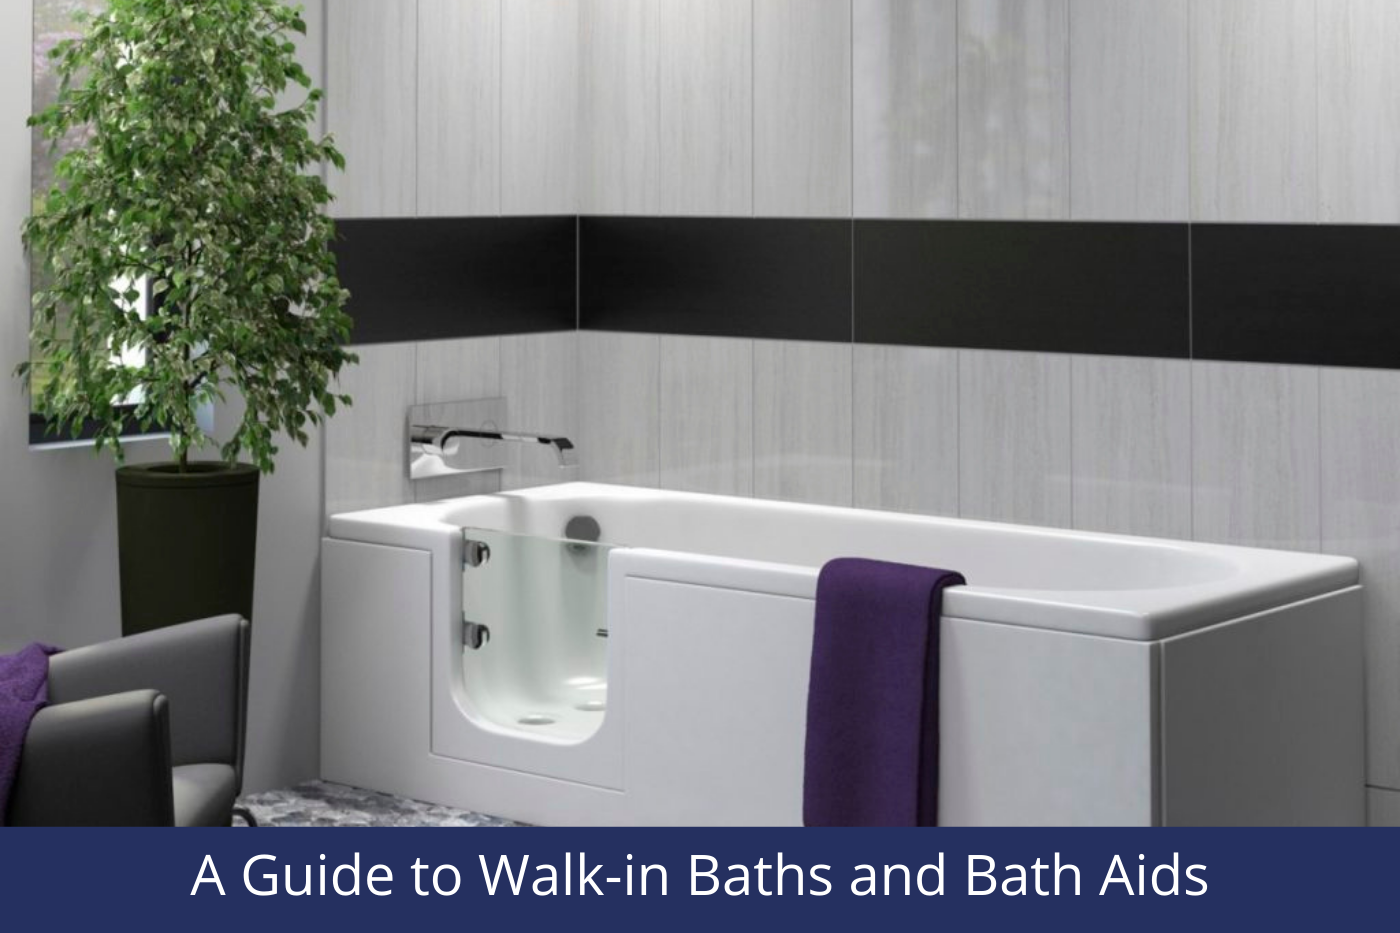 A Guide to Walk-in Baths and Bath Aids